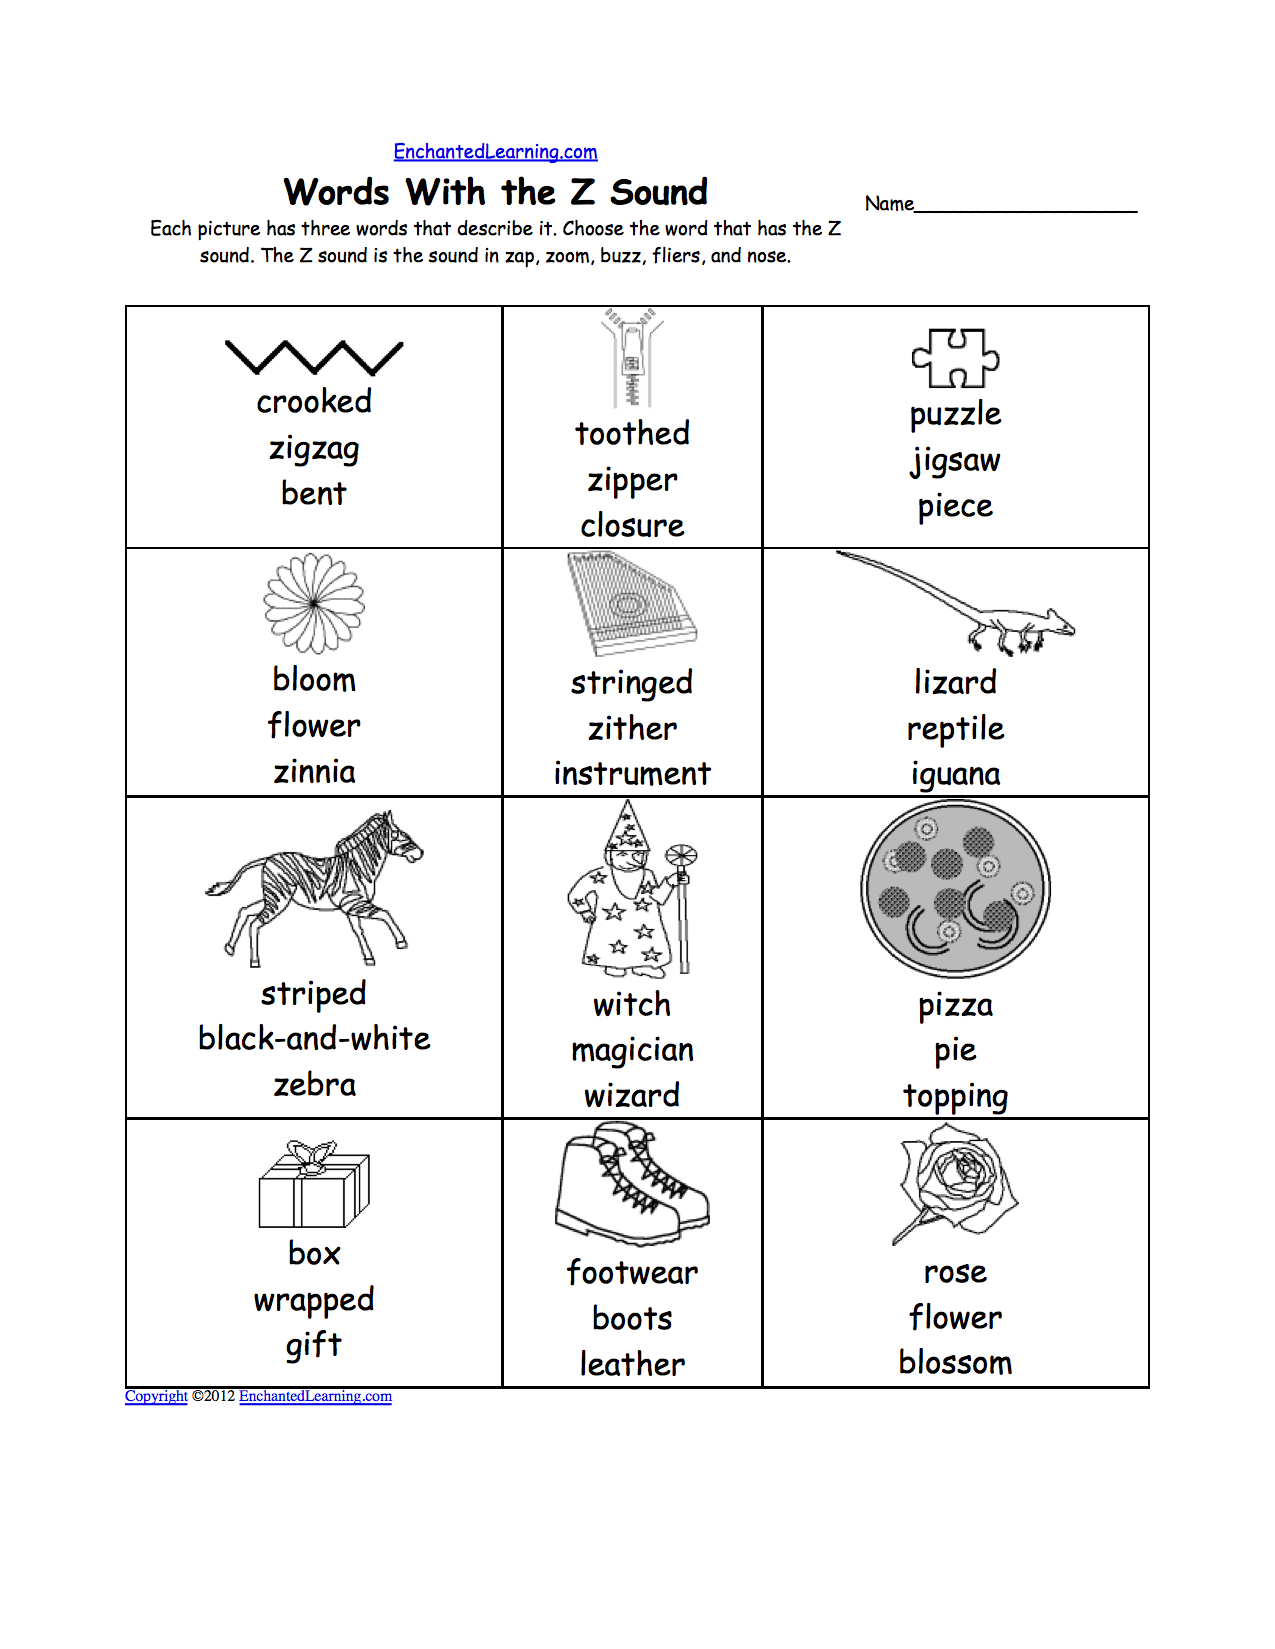 Weirdmailus  Marvelous Phonics Worksheets Multiple Choice Worksheets To Print  With Fair Phonics Worksheets Multiple Choice Worksheets To Print  Enchantedlearningcom With Easy On The Eye Subtracting Fractions With Same Denominator Worksheets Also D Nealian Alphabet Worksheets In Addition Art Grid Drawing Worksheets And Generalization Worksheets For Th Grade As Well As Personality Adjectives Worksheet Additionally  Digit Subtraction Without Regrouping Worksheets From Enchantedlearningcom With Weirdmailus  Fair Phonics Worksheets Multiple Choice Worksheets To Print  With Easy On The Eye Phonics Worksheets Multiple Choice Worksheets To Print  Enchantedlearningcom And Marvelous Subtracting Fractions With Same Denominator Worksheets Also D Nealian Alphabet Worksheets In Addition Art Grid Drawing Worksheets From Enchantedlearningcom